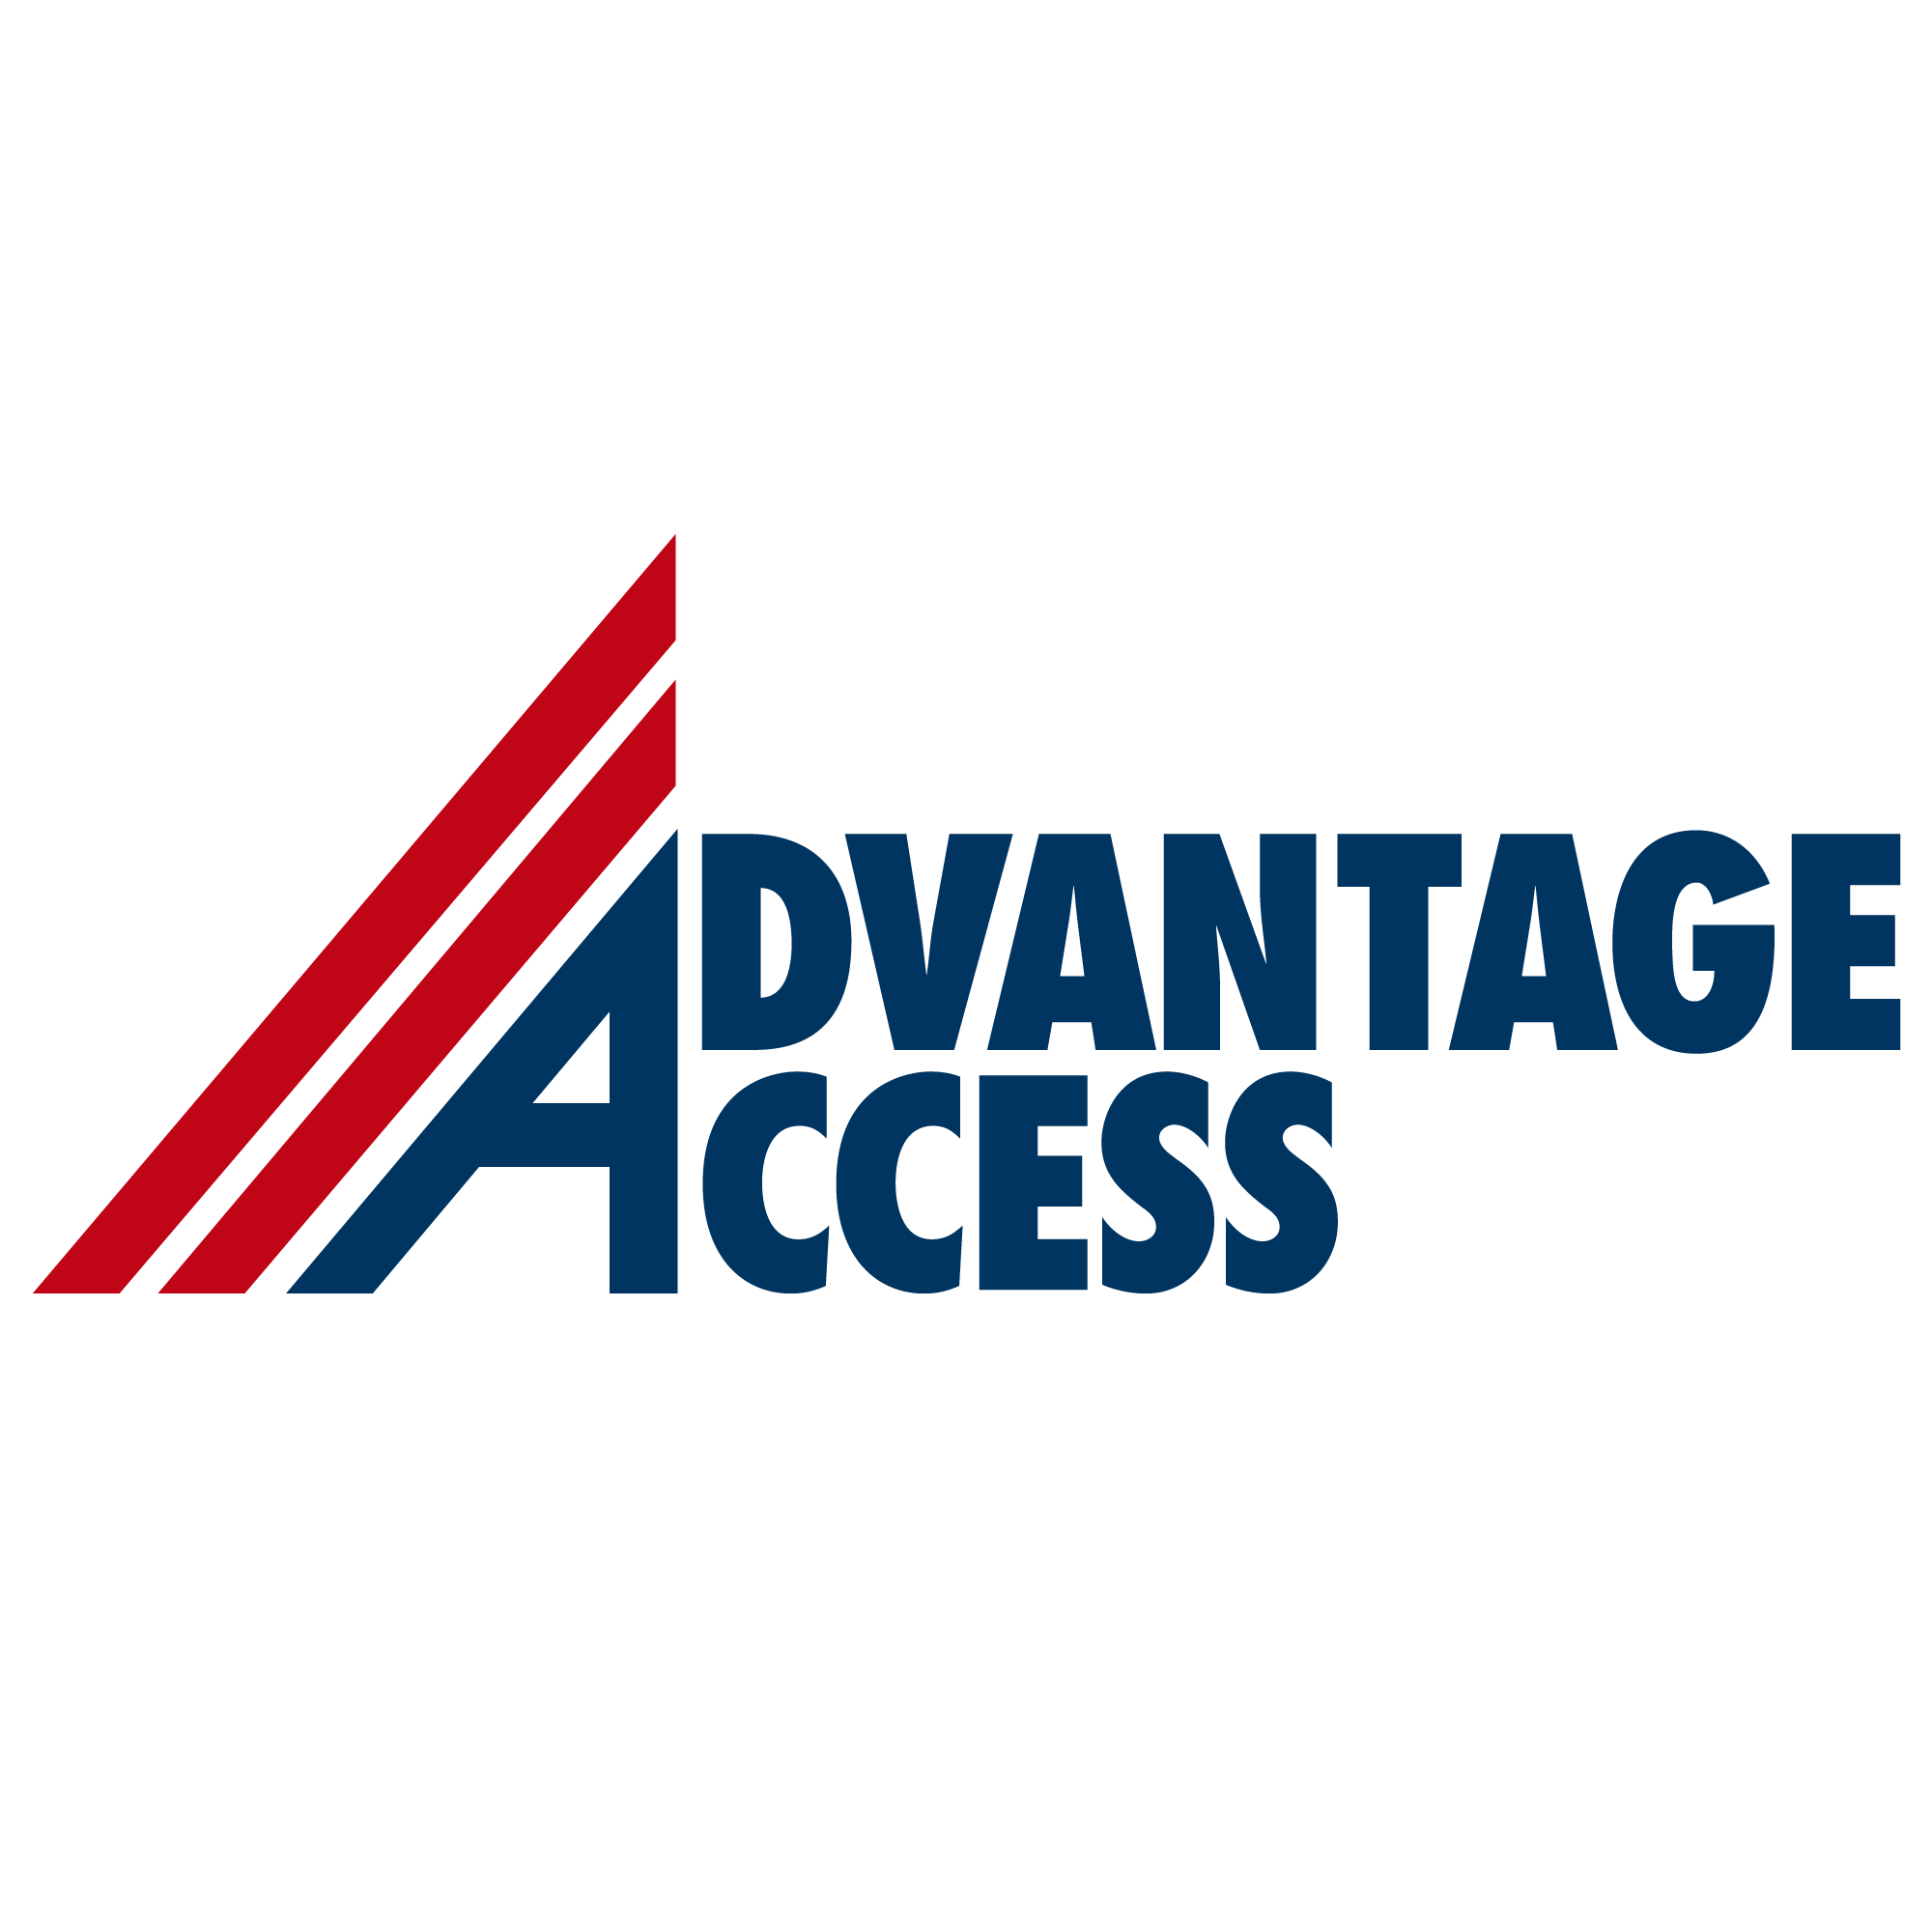 Advantage Access